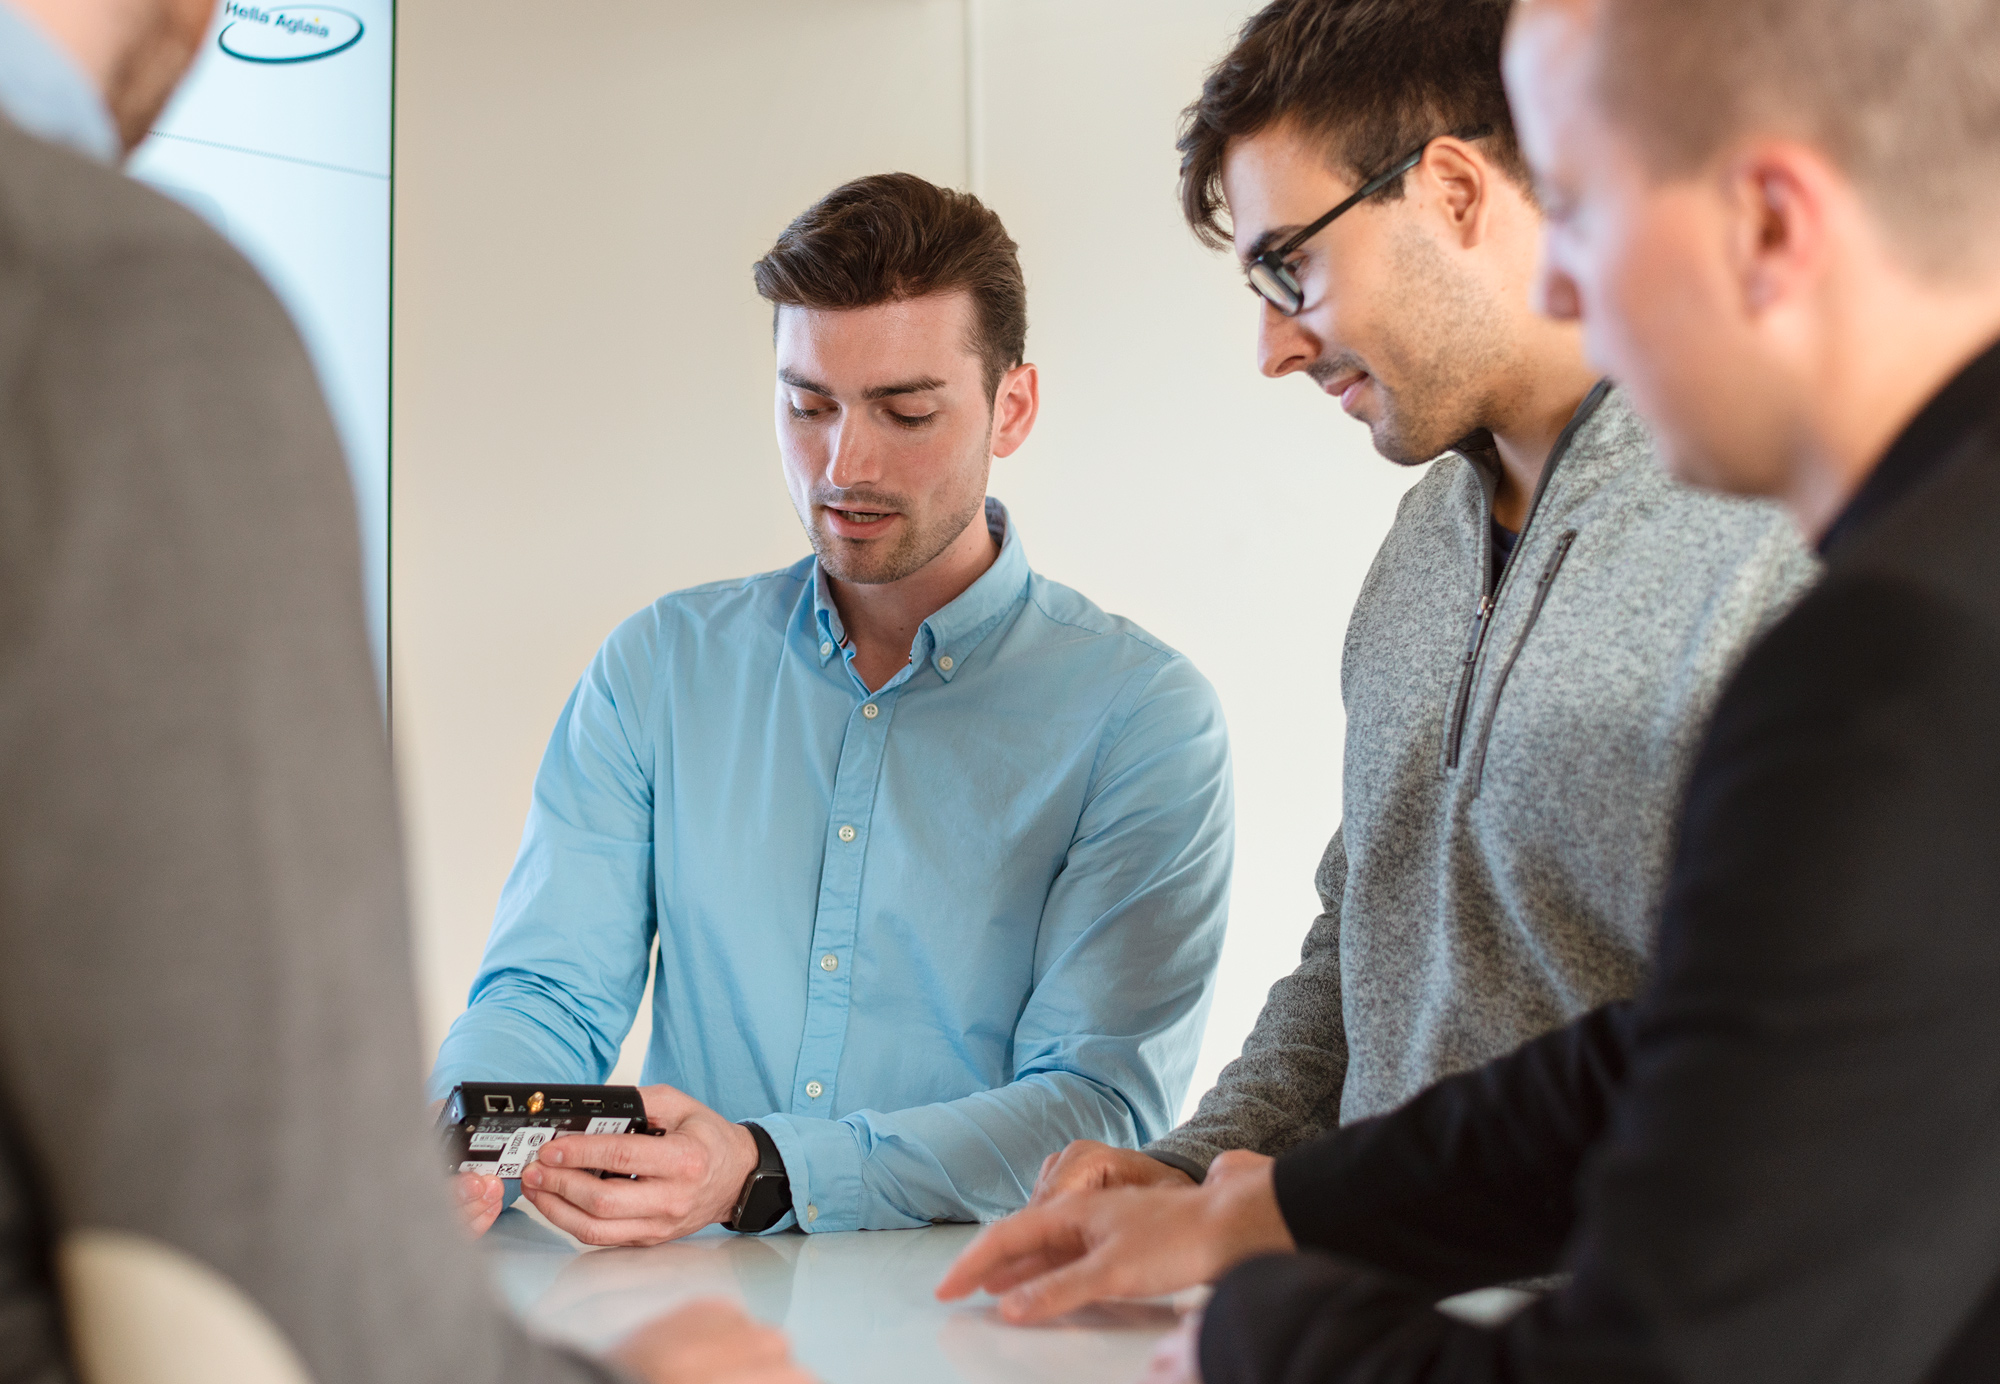 Berlin technology firm HELLA Aglaia has acquired the start-up company Pyramics.